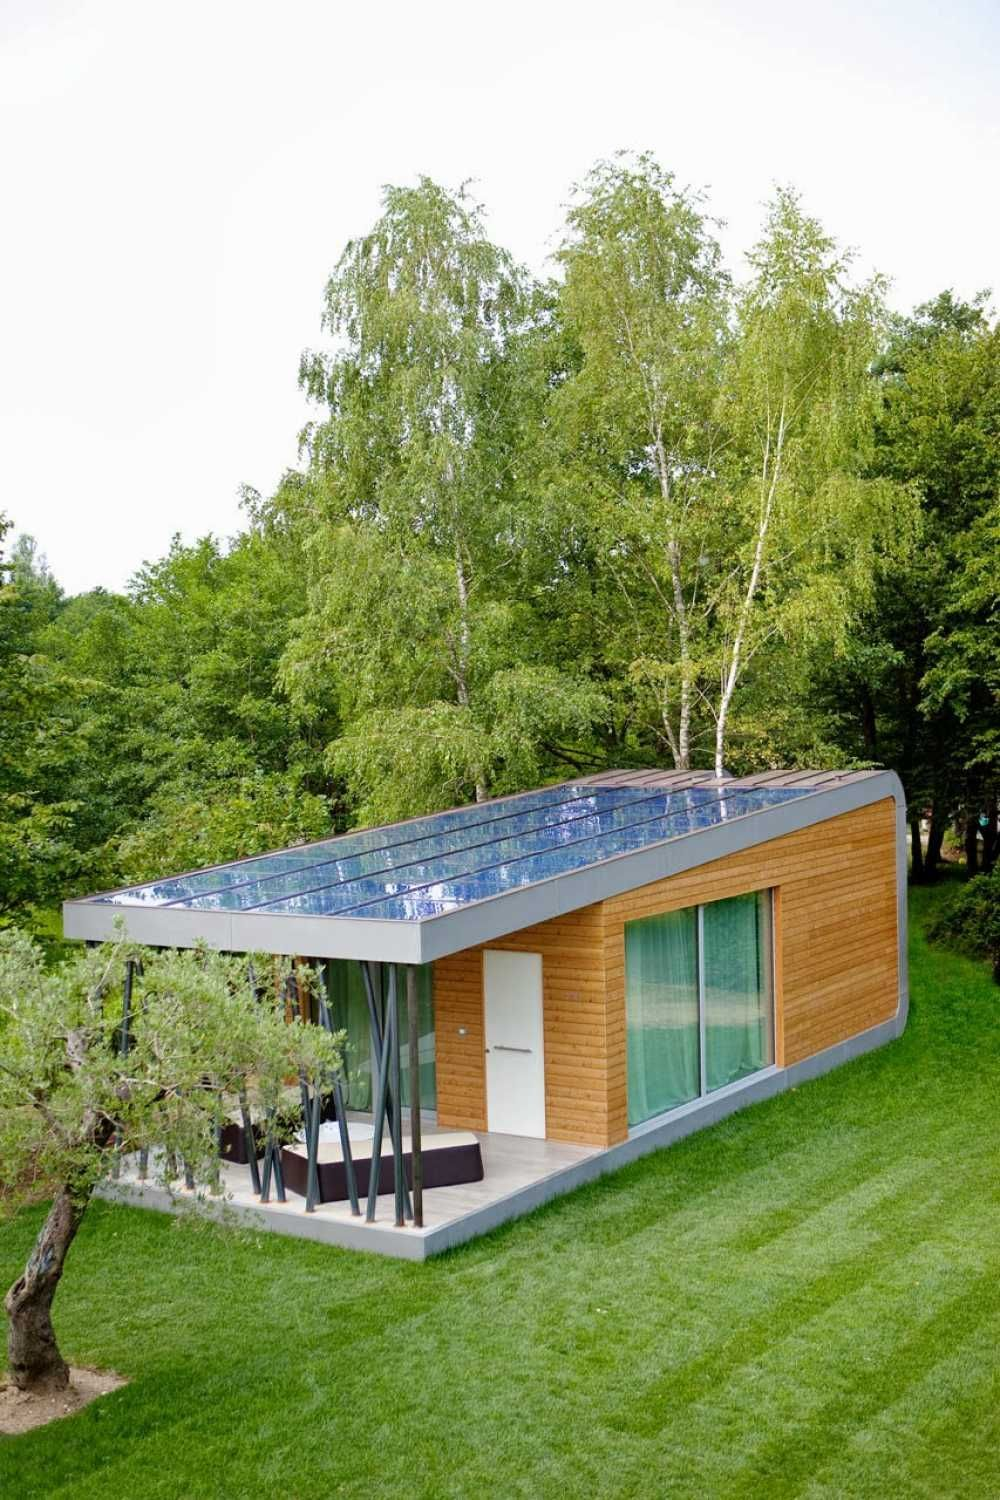 Eco Friendly House Design Architecture Decoration Ideas In 2020 Container House Modern Tiny House Small House